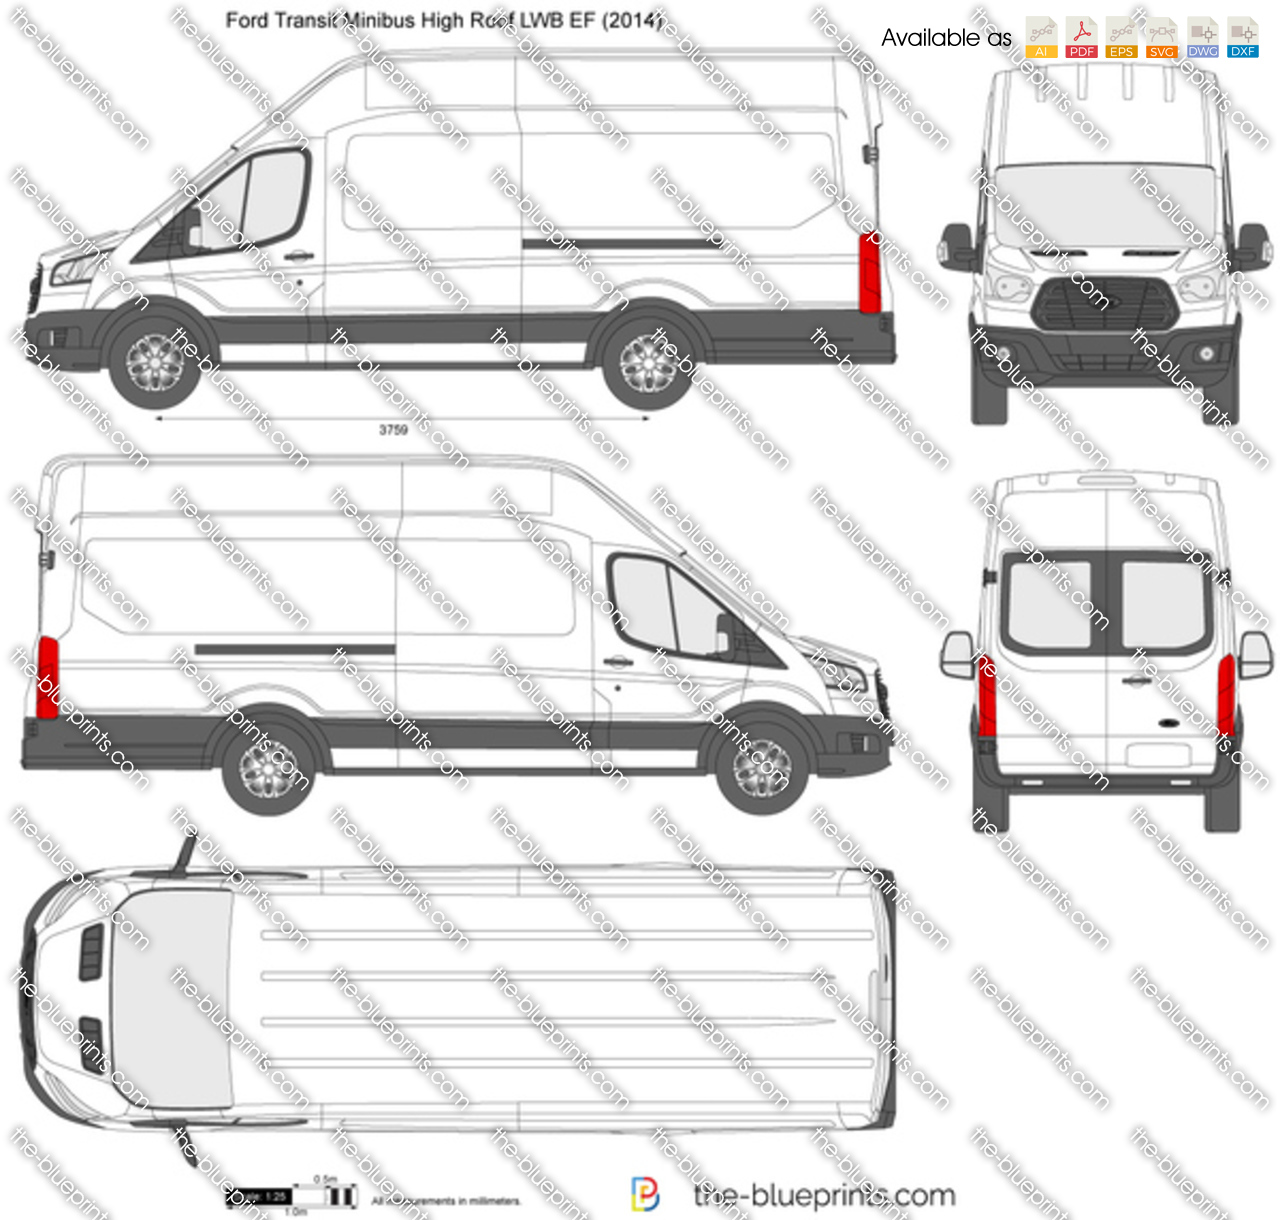 The blueprints vector drawing ford transit minibus